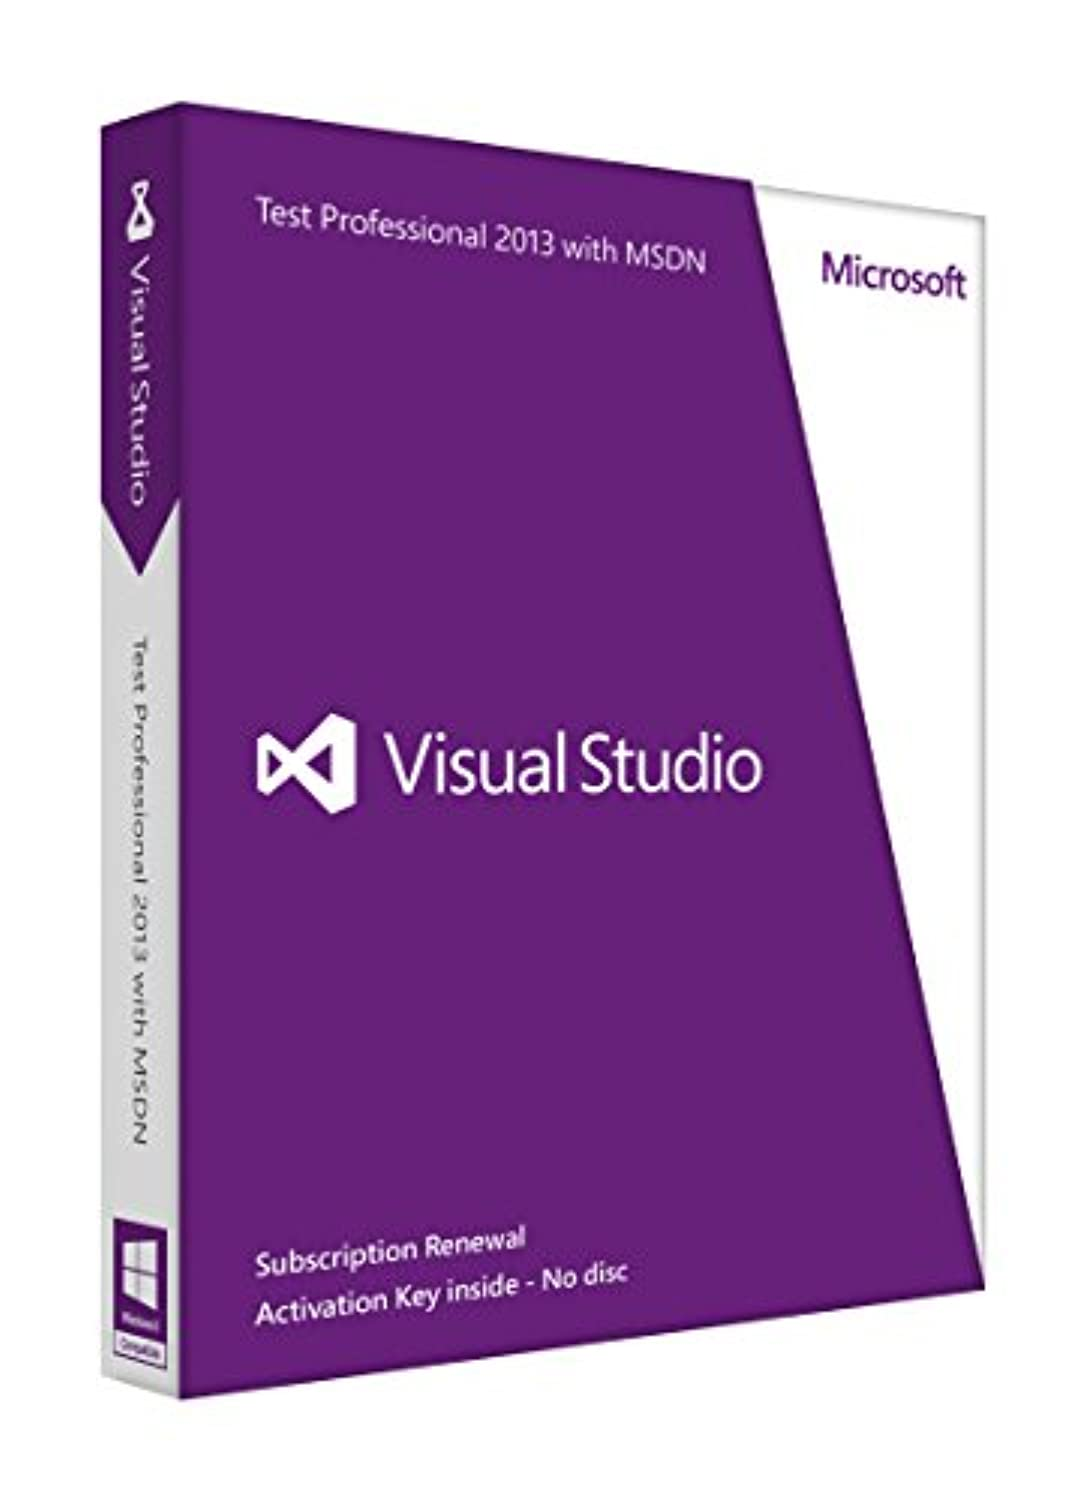 独裁刑務所魔術師Microsoft Visual Studio Test Professional 2013 with MSDN英語|更新版